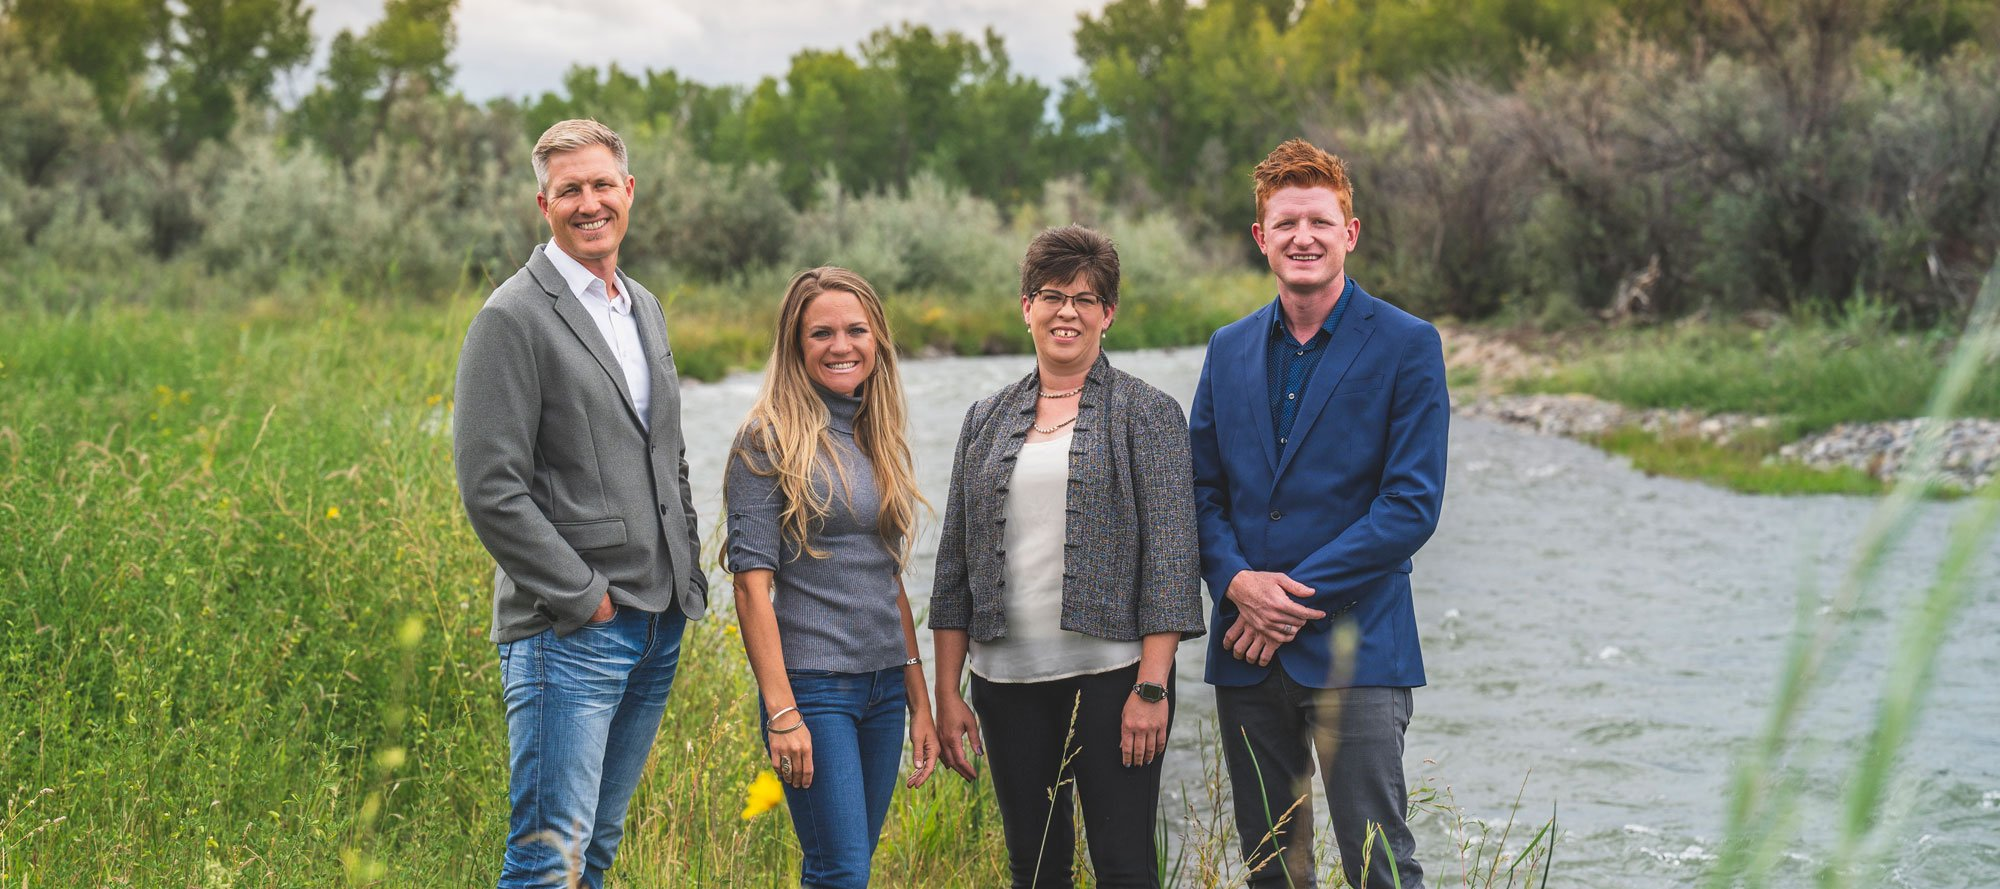 Atha Team Seller Specialists and Buyer's Agents - Montrose CO Keller Williams